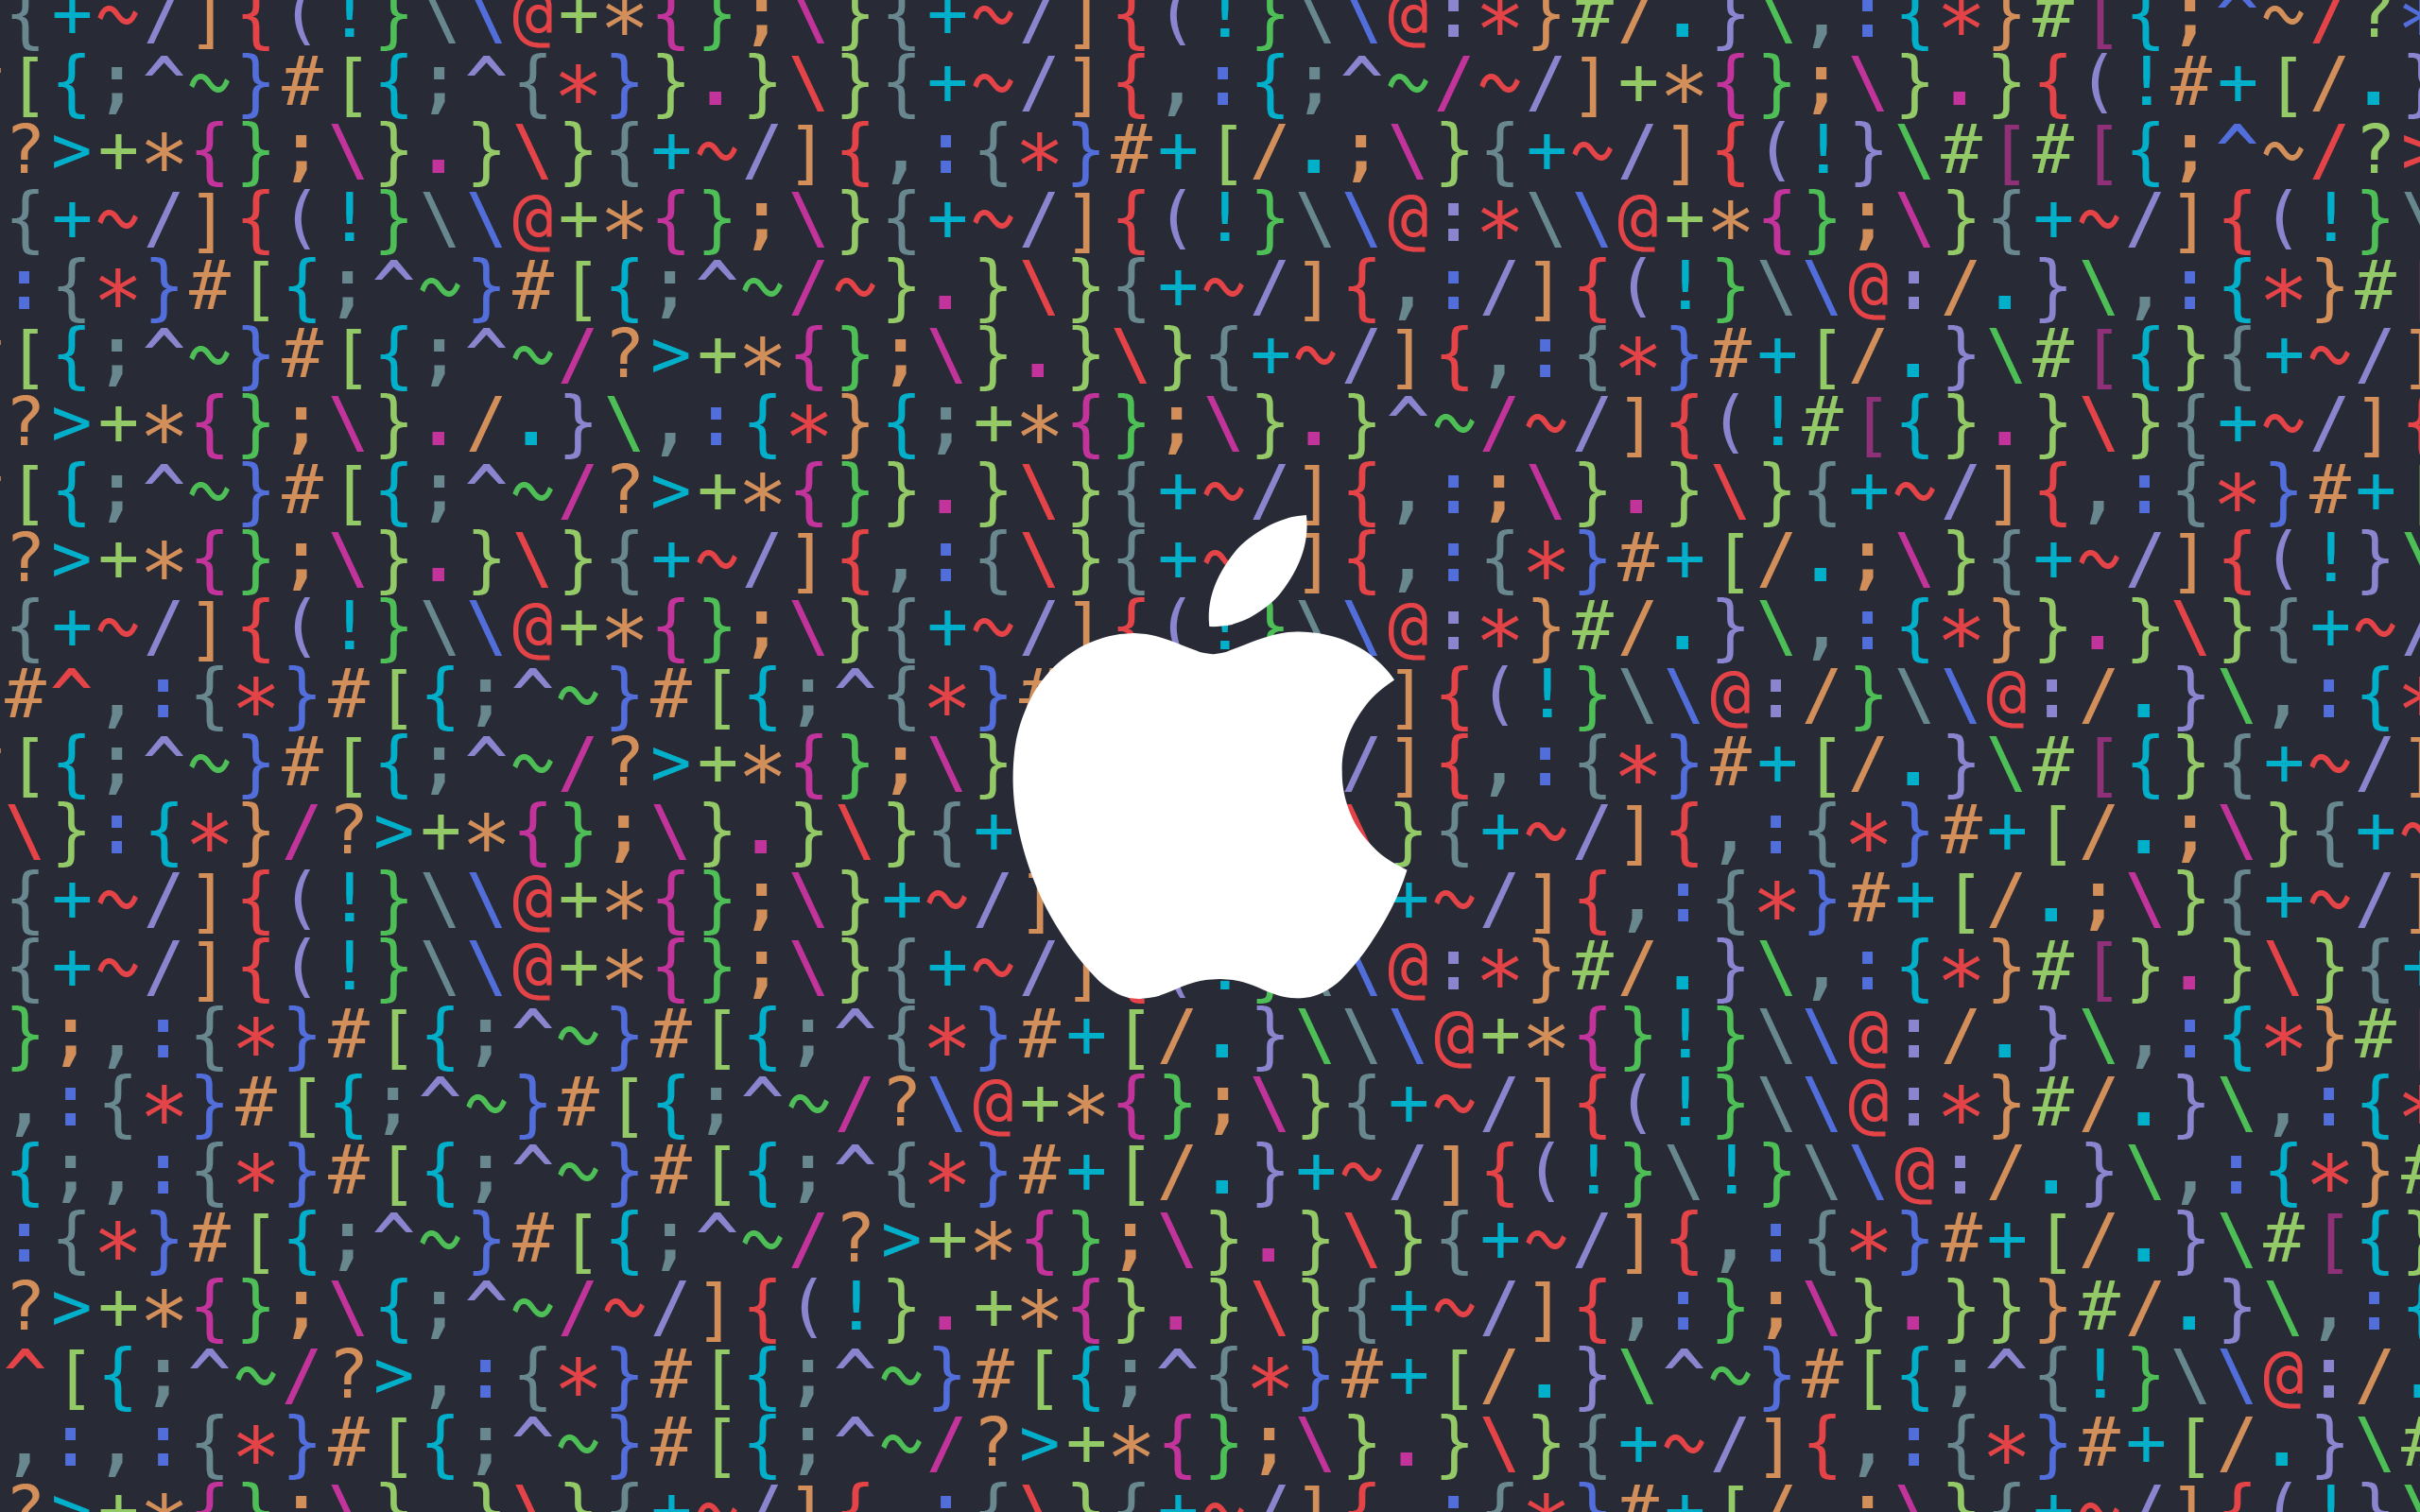 iMahdi-WWDC-2016-wallpaper-desktop